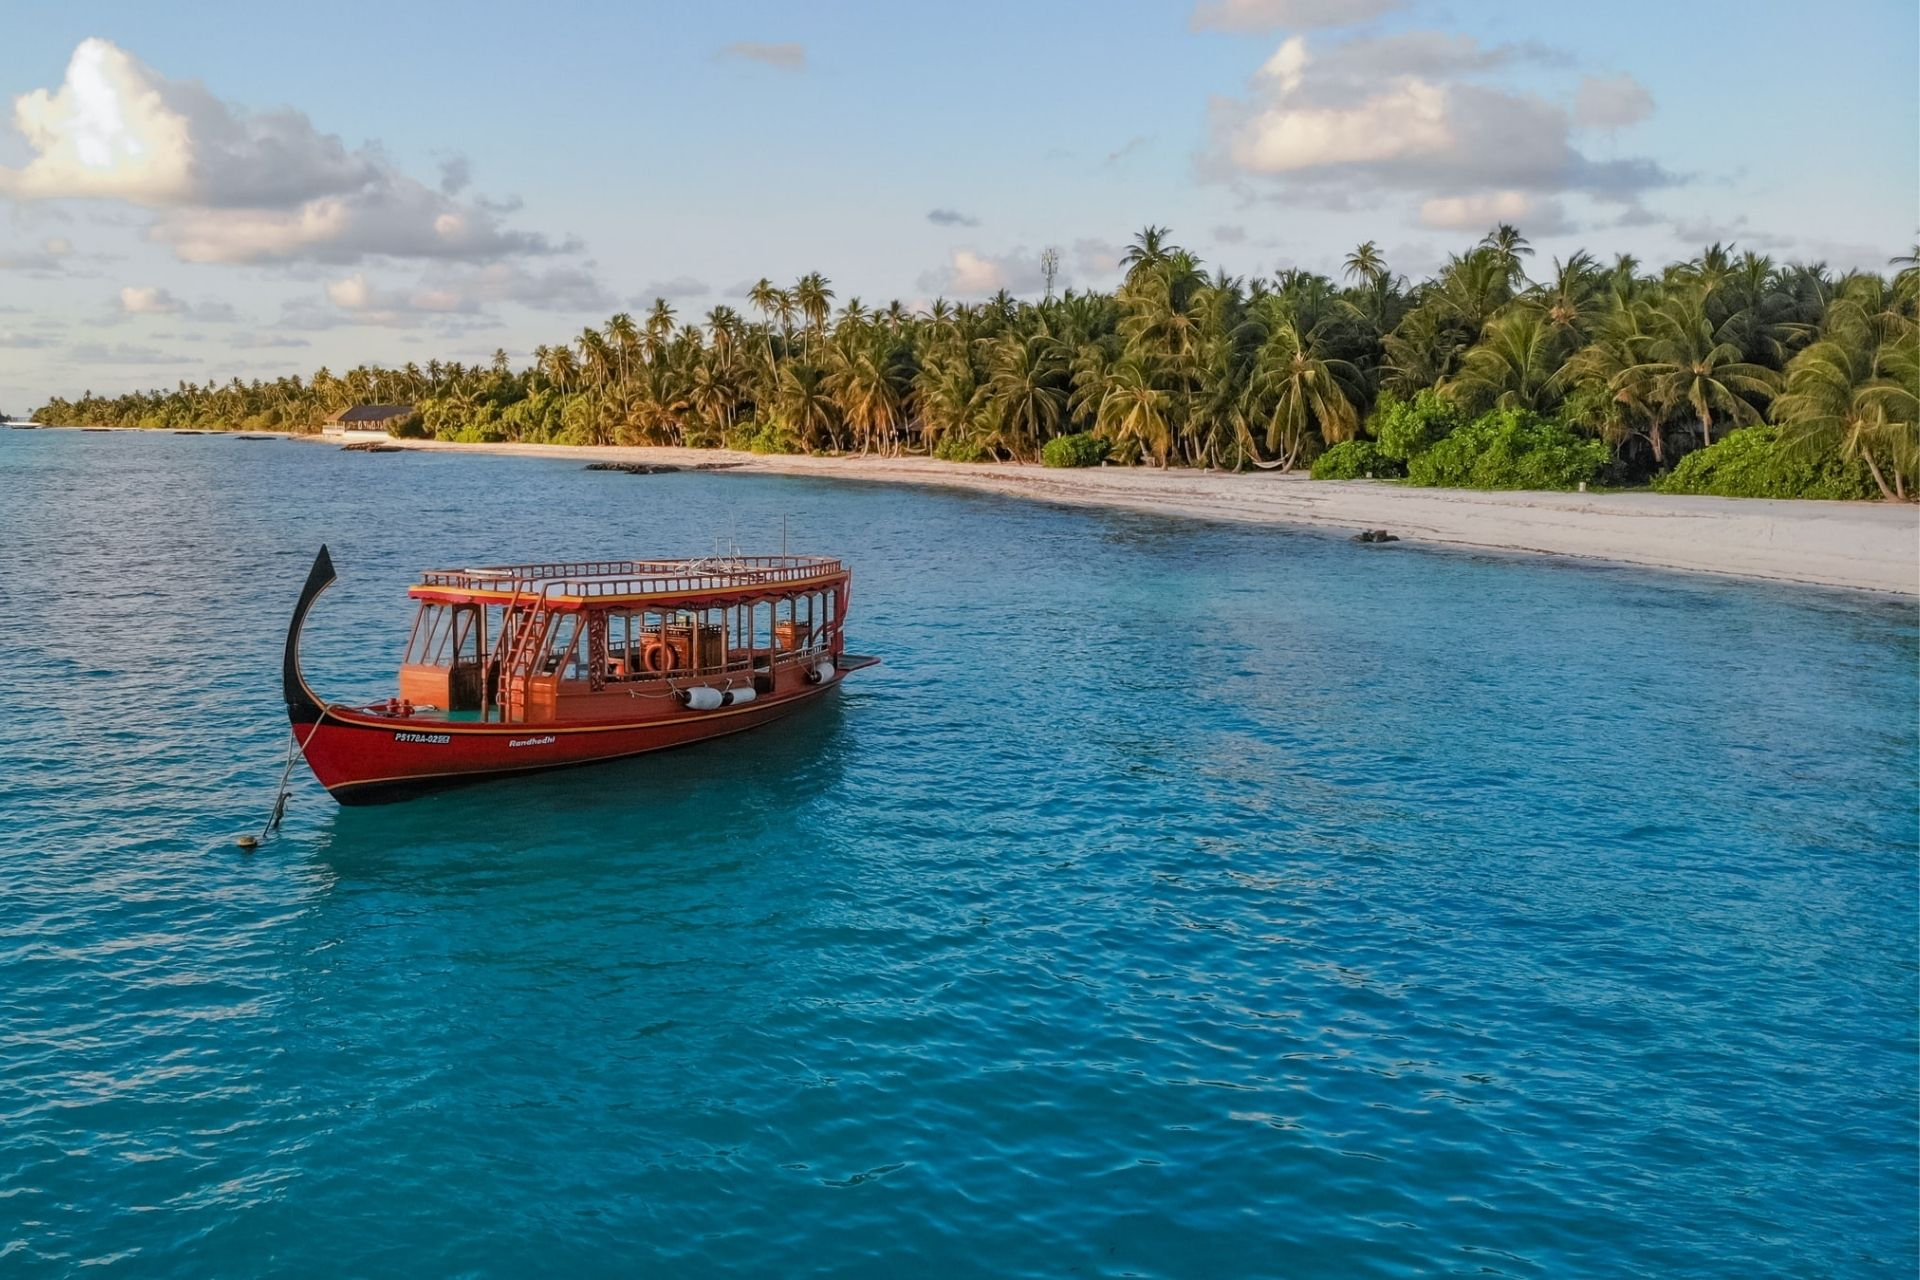 How many days are sufficient to visit Maldives?